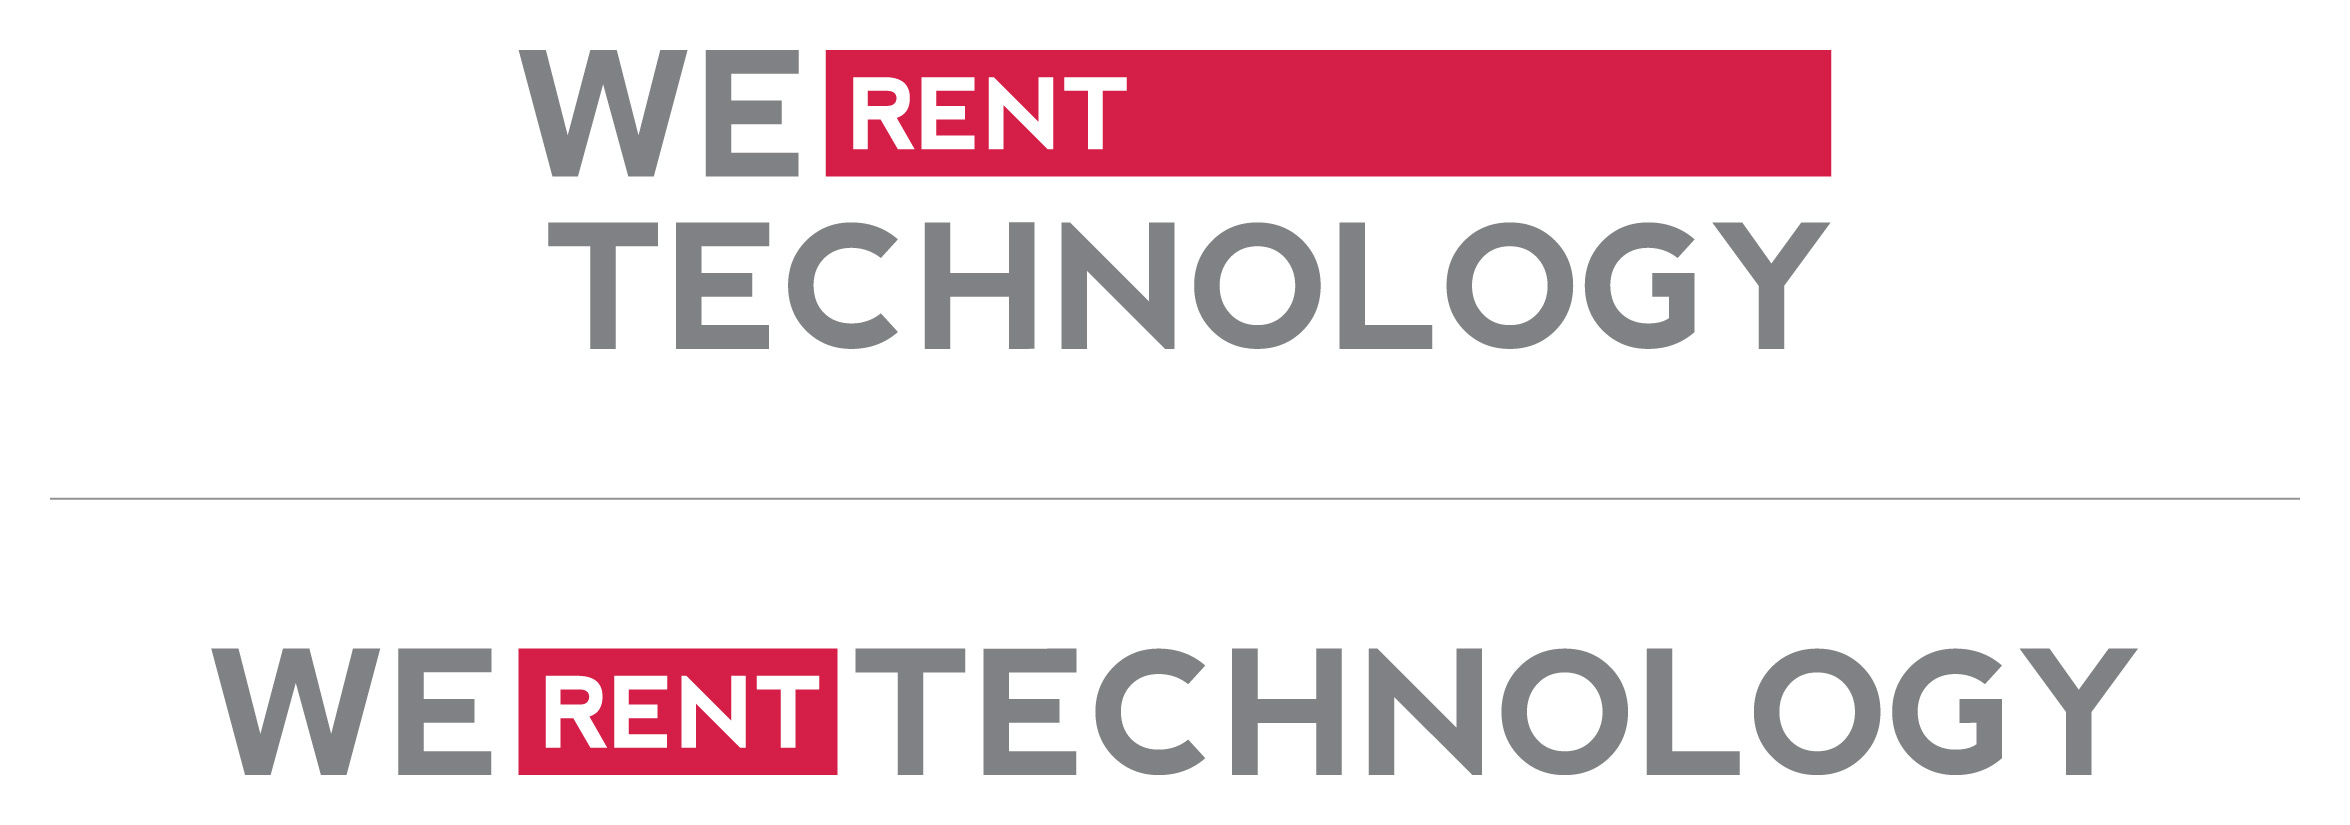 We Rent Technology Logos